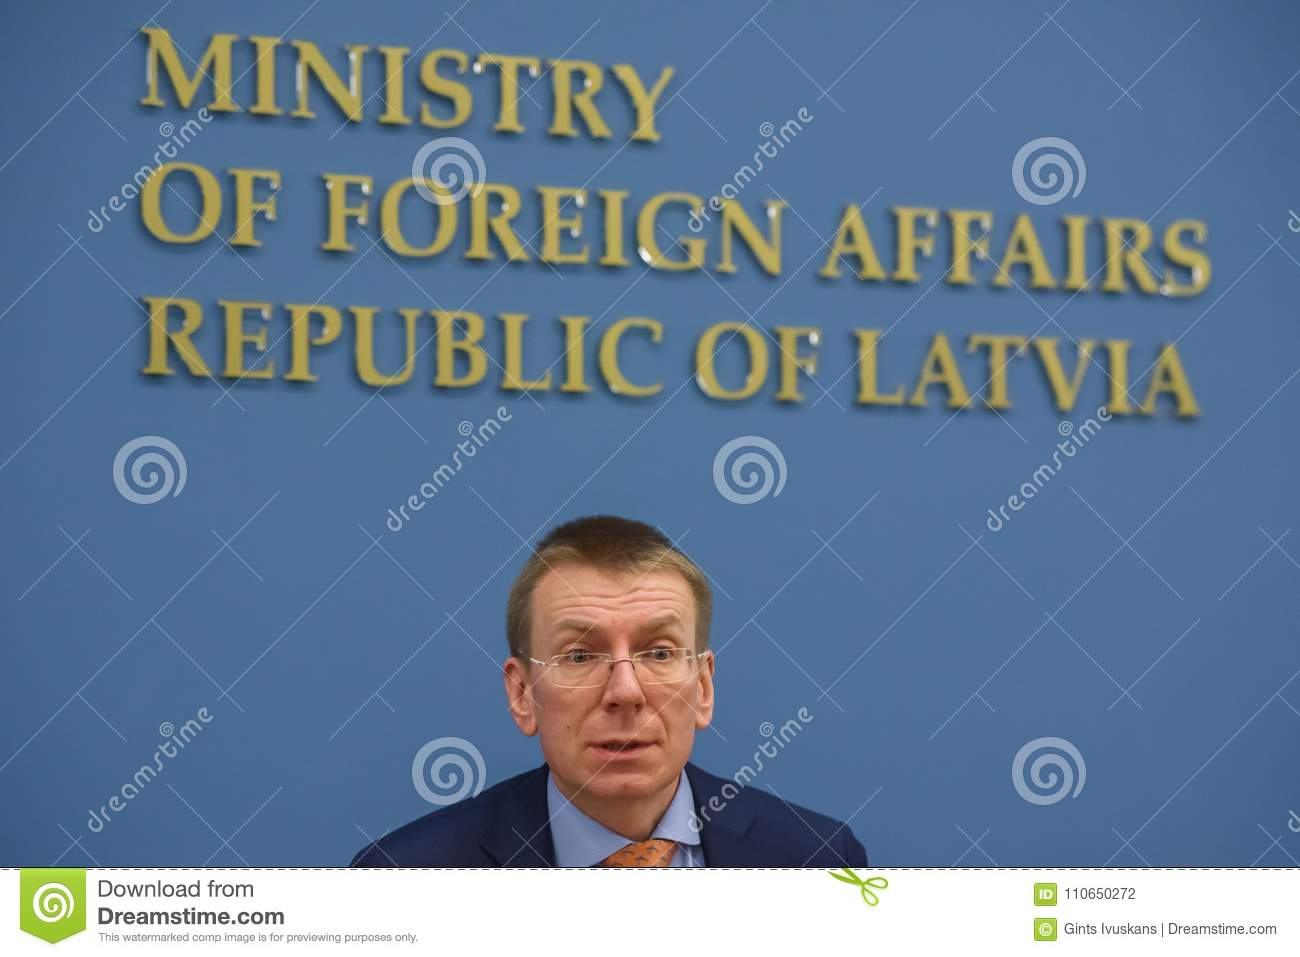 Edgars Rinkevics, Minister of Foreign Affairs of Latvia